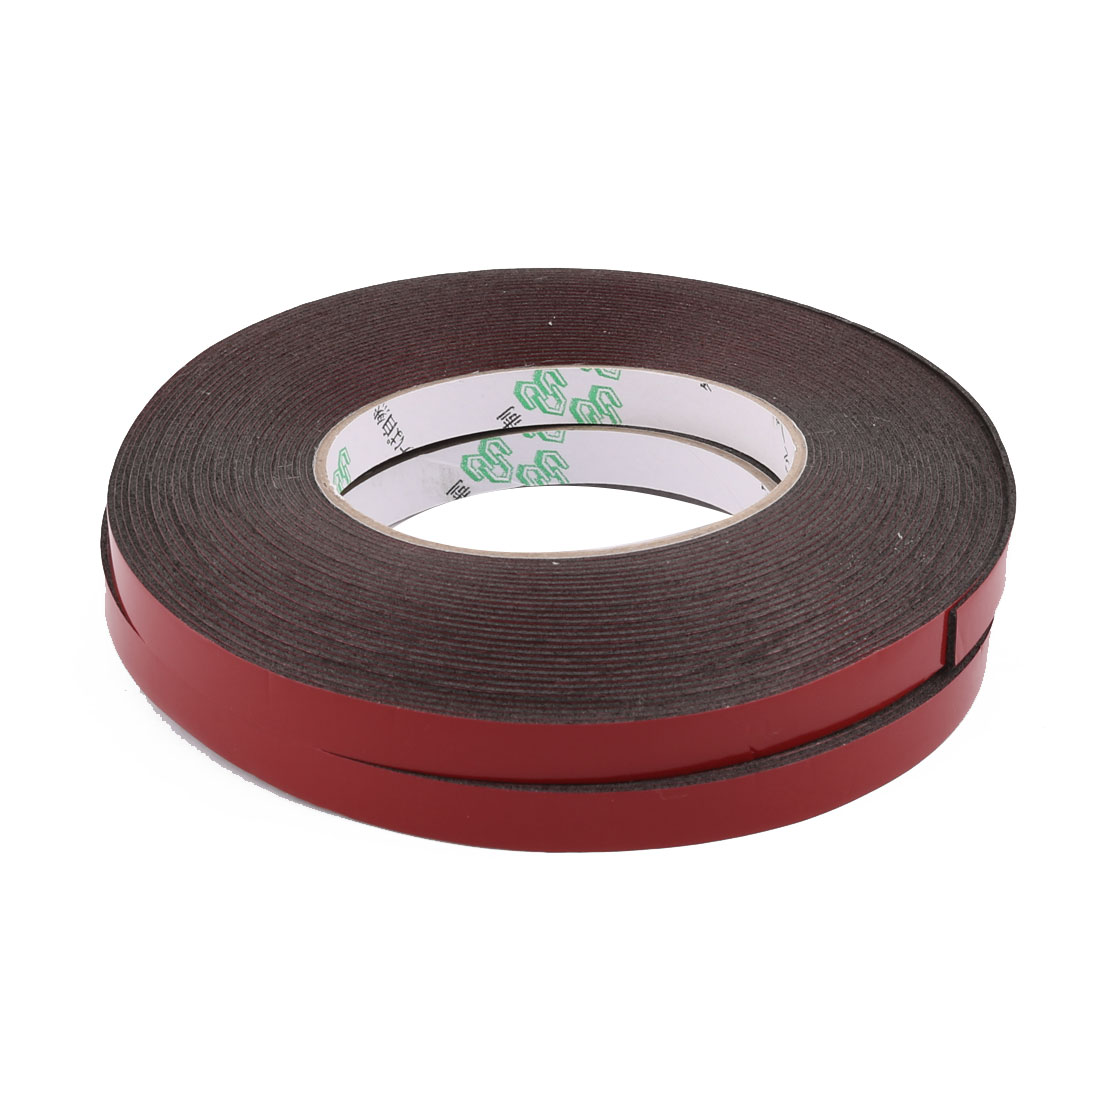 2pcs 1CM Width 10M Length 1MM Thick Dual Sided Sealing Shockproof Sponge Tape Black